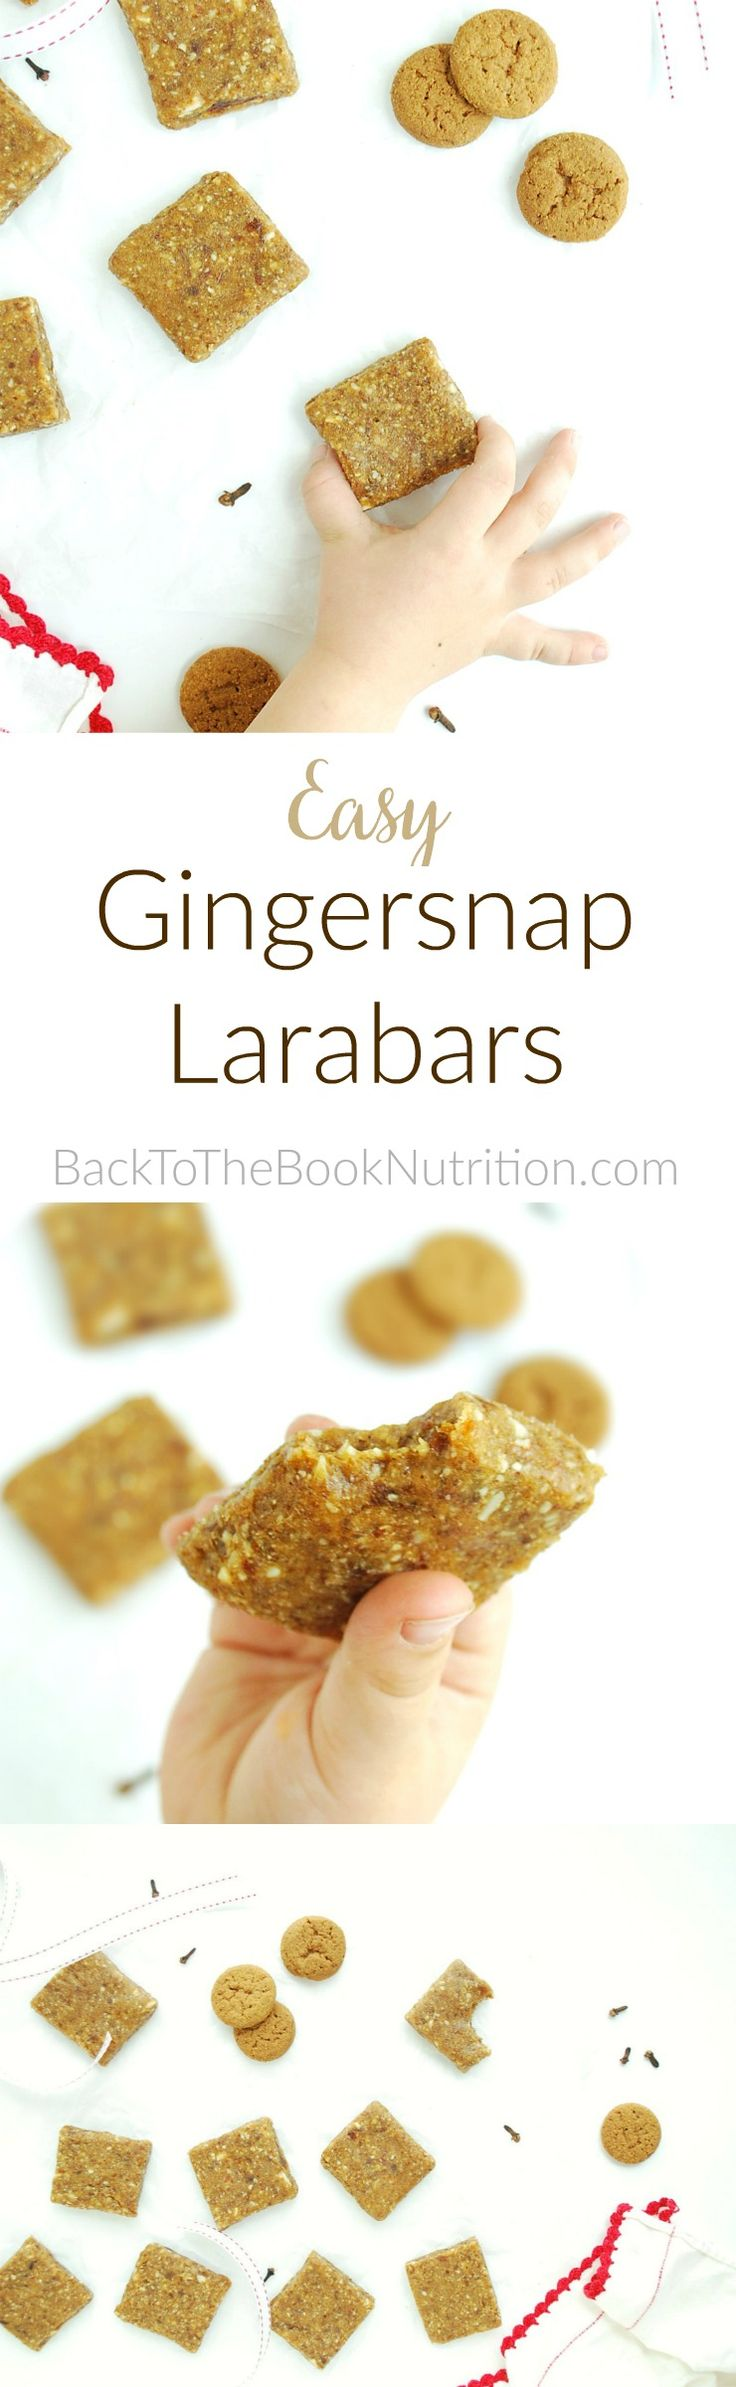 Easy Gingersnap Larabars - super healthy breakfast or snack made from just fruits, nuts, and spices but tastes like cookies! (Gluten free, grain free, dairy free, peanut free) | Back To The Book Nutrition